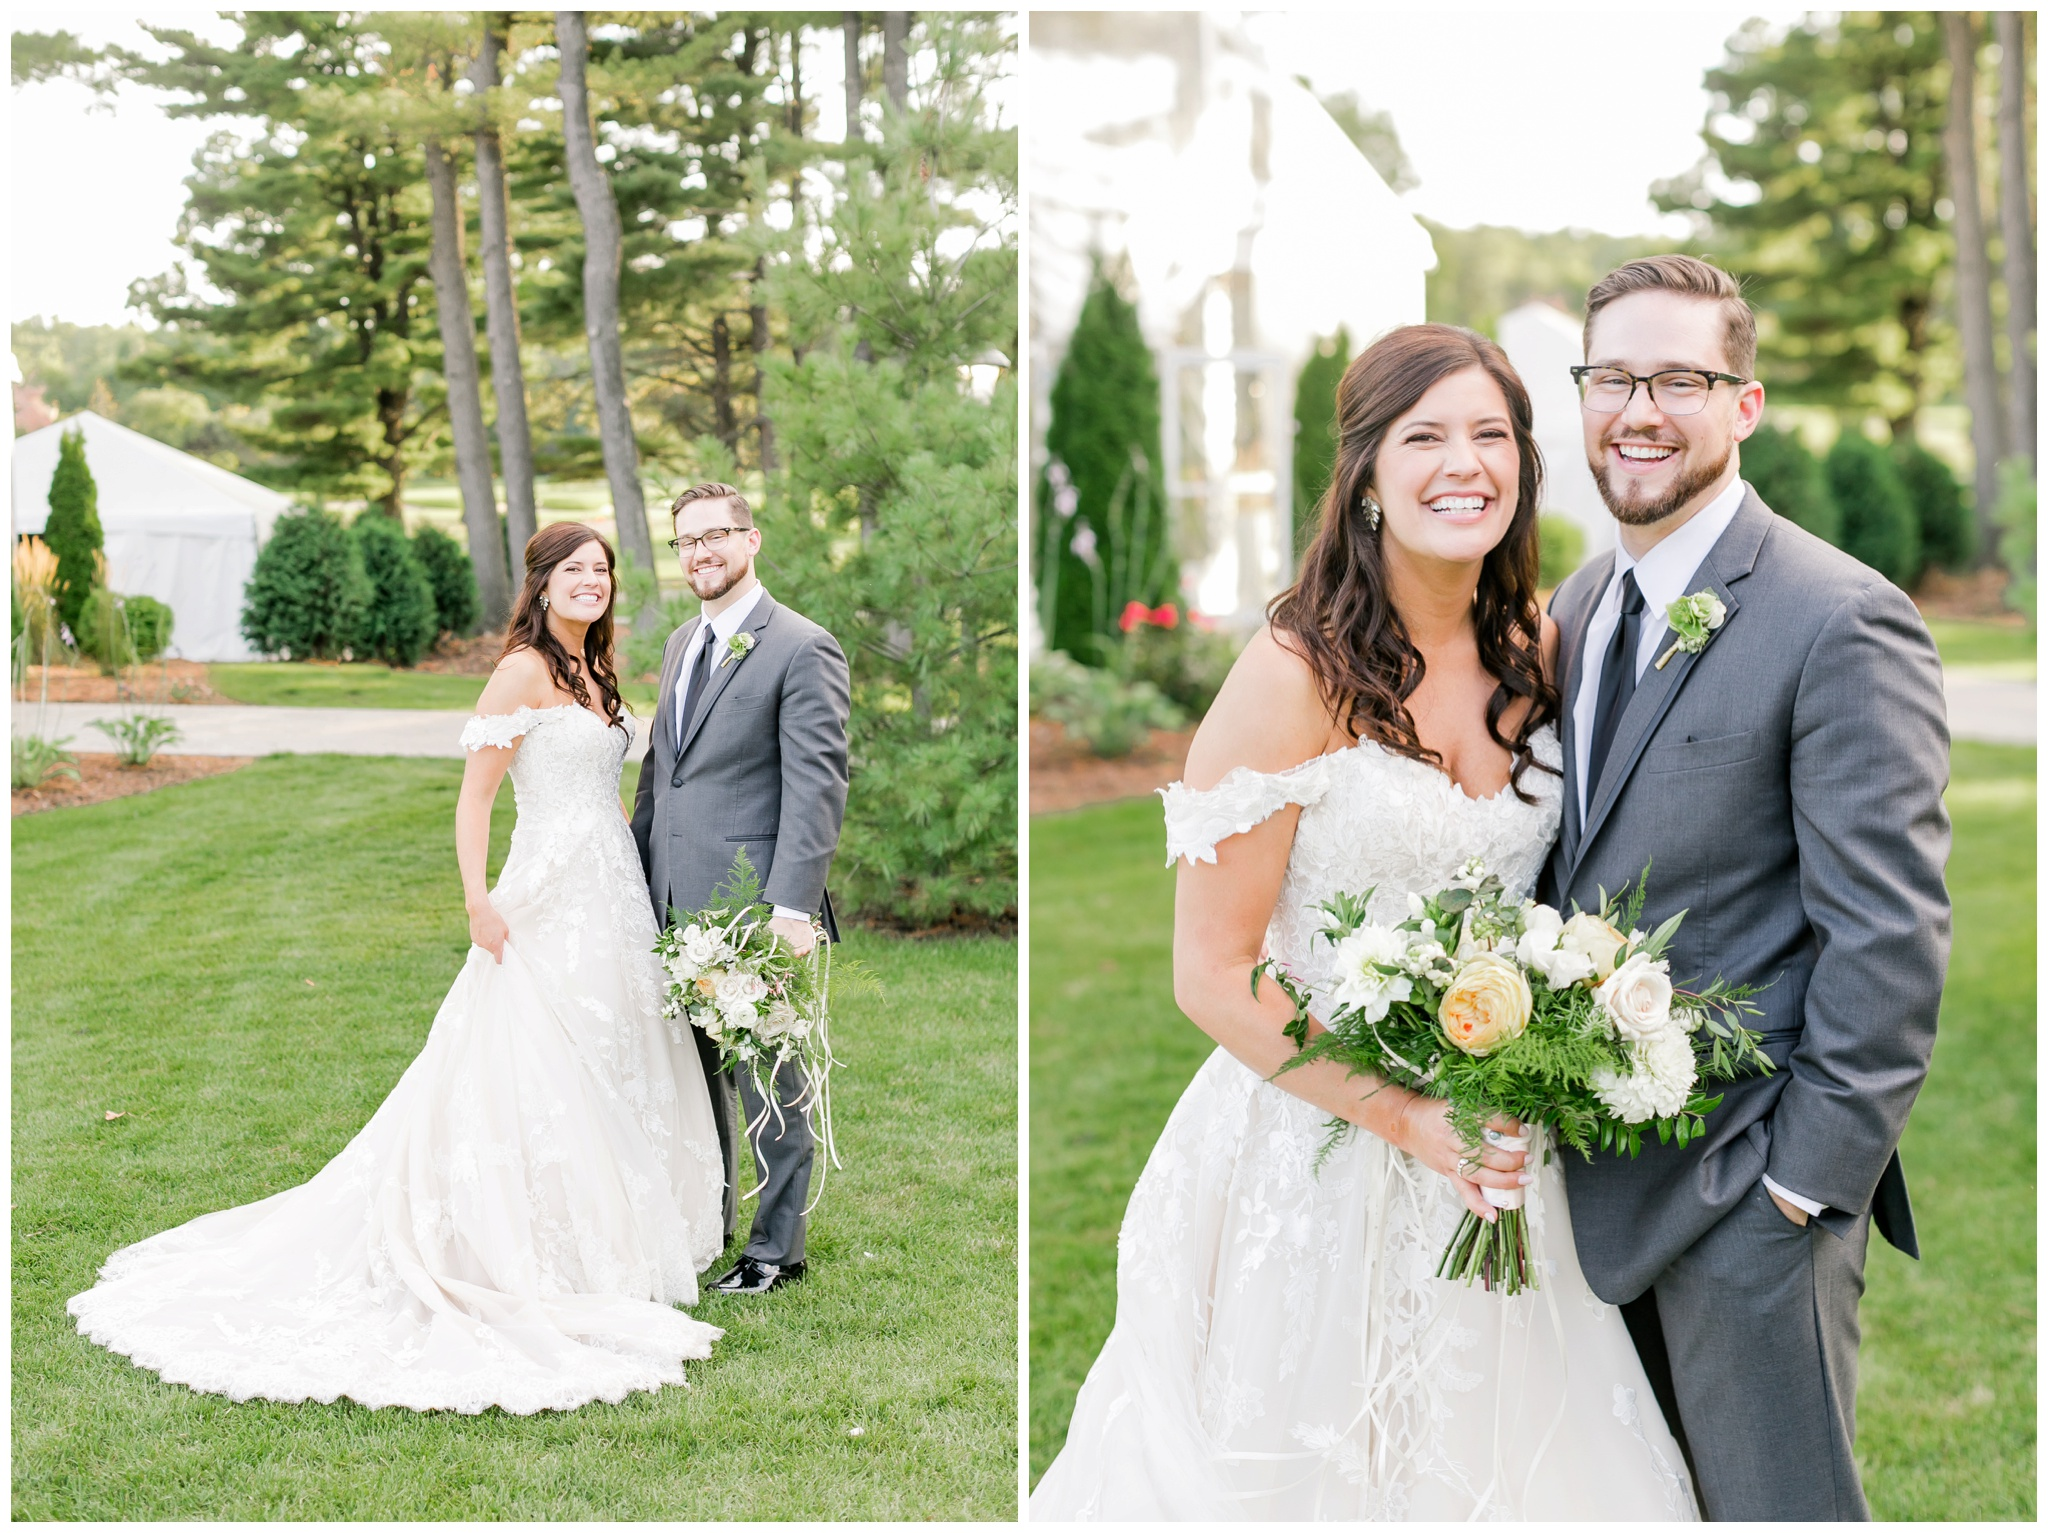 bishops_bay_country_club_wedding_middleton_wisconsin_caynay_photo_4725.jpg